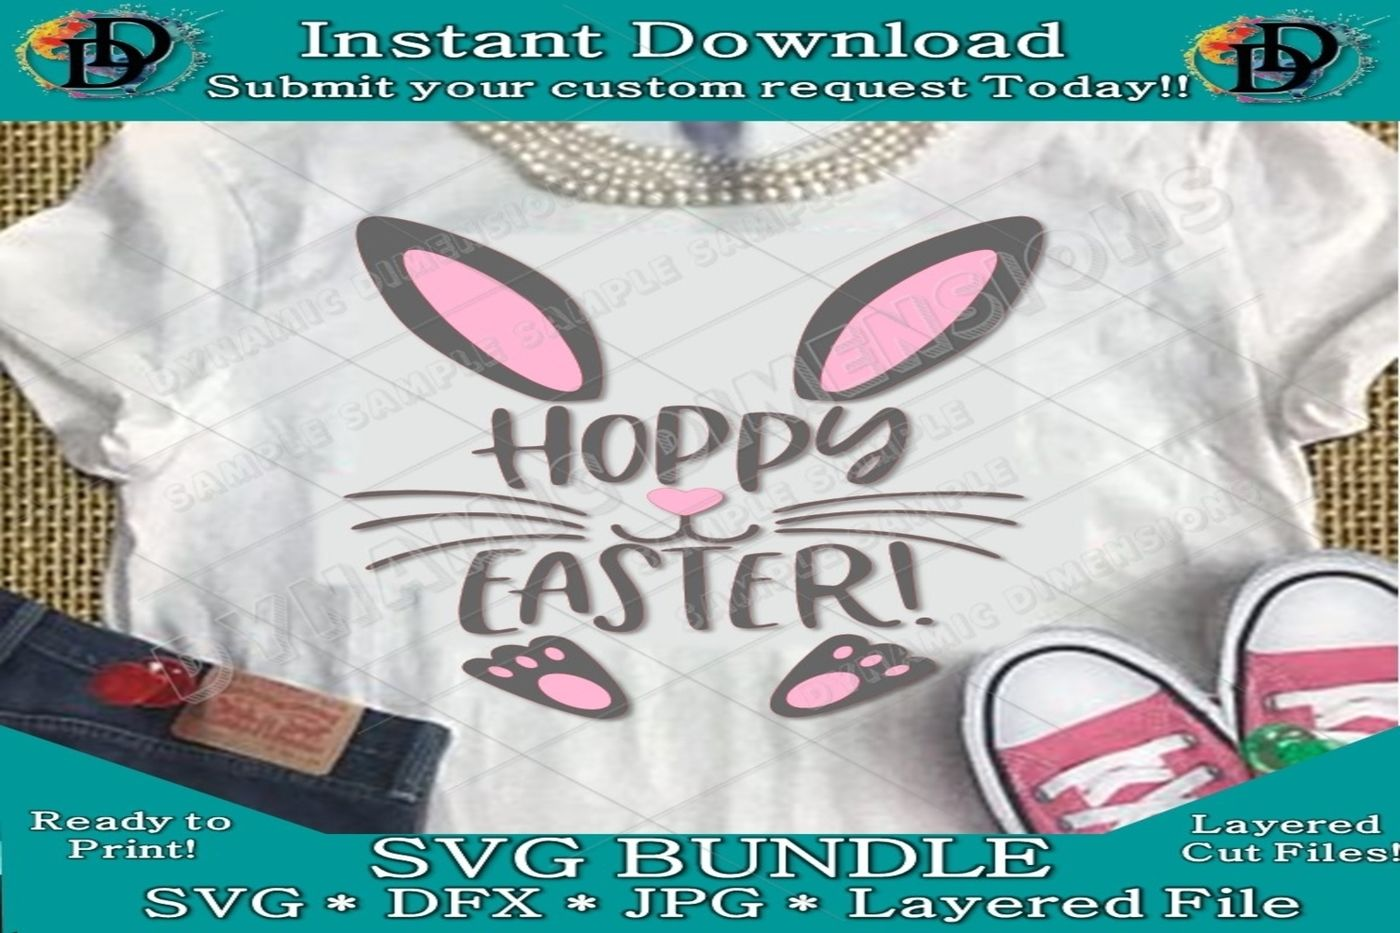 Happy Easter Svg Hoppy Easter Bunny Svg Basket Design Easter